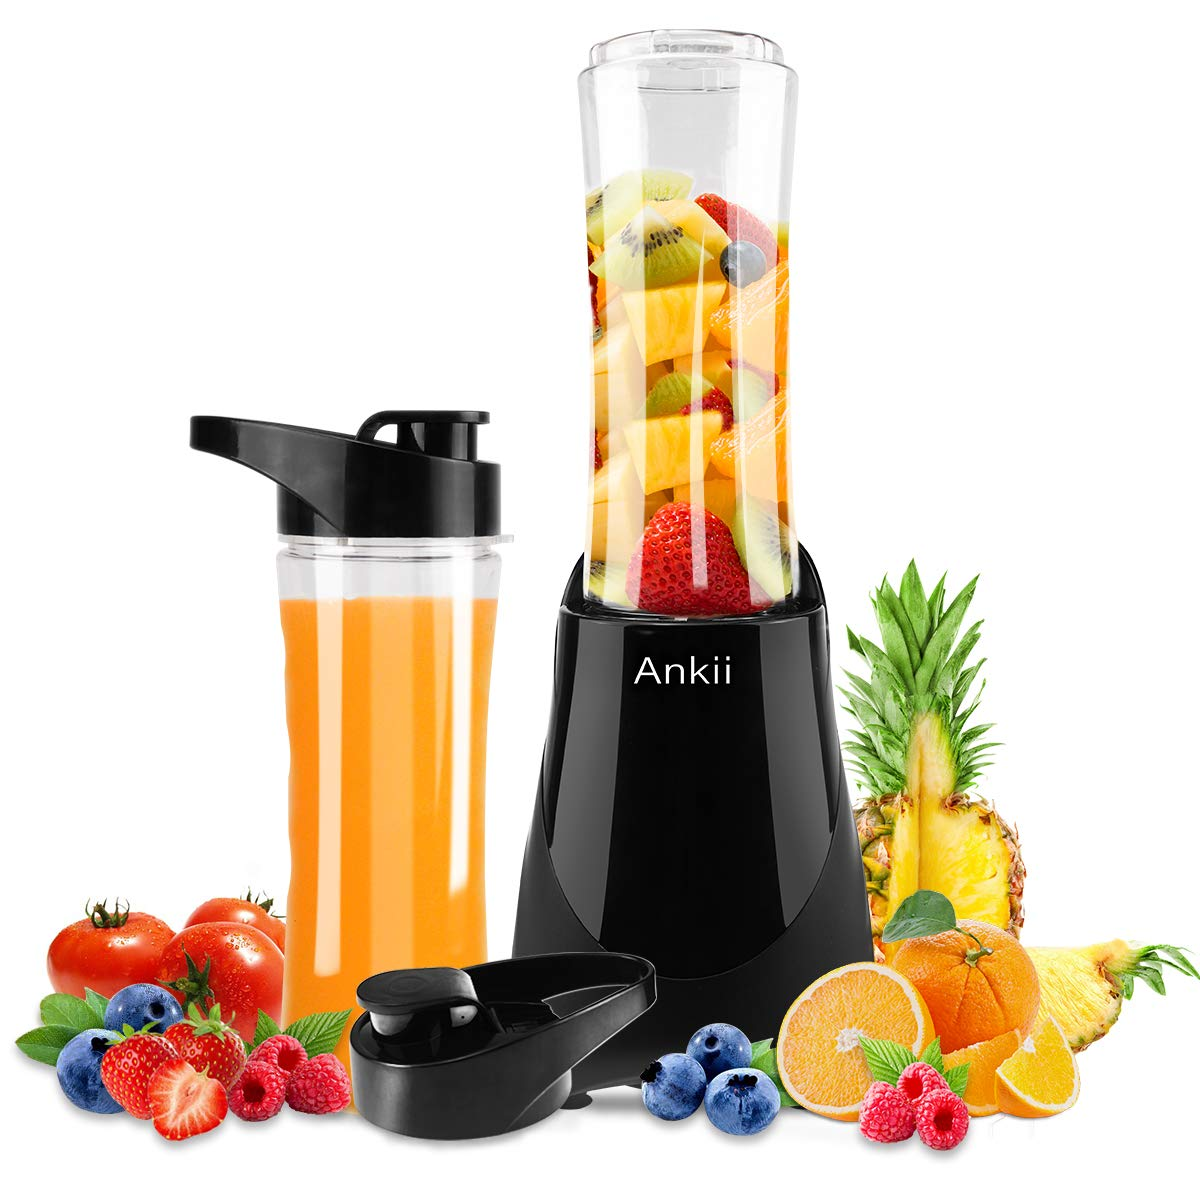 Professional Personal Size Blender with 300-Watt Base, Vitamin and Nutrient Extraction, Detachable Blade Assembly, Total Crushing Technology for Smoothies, Ice, vegetable and Frozen Fruit, 2 Tritan Bottle with 20 oz, Black Ankii